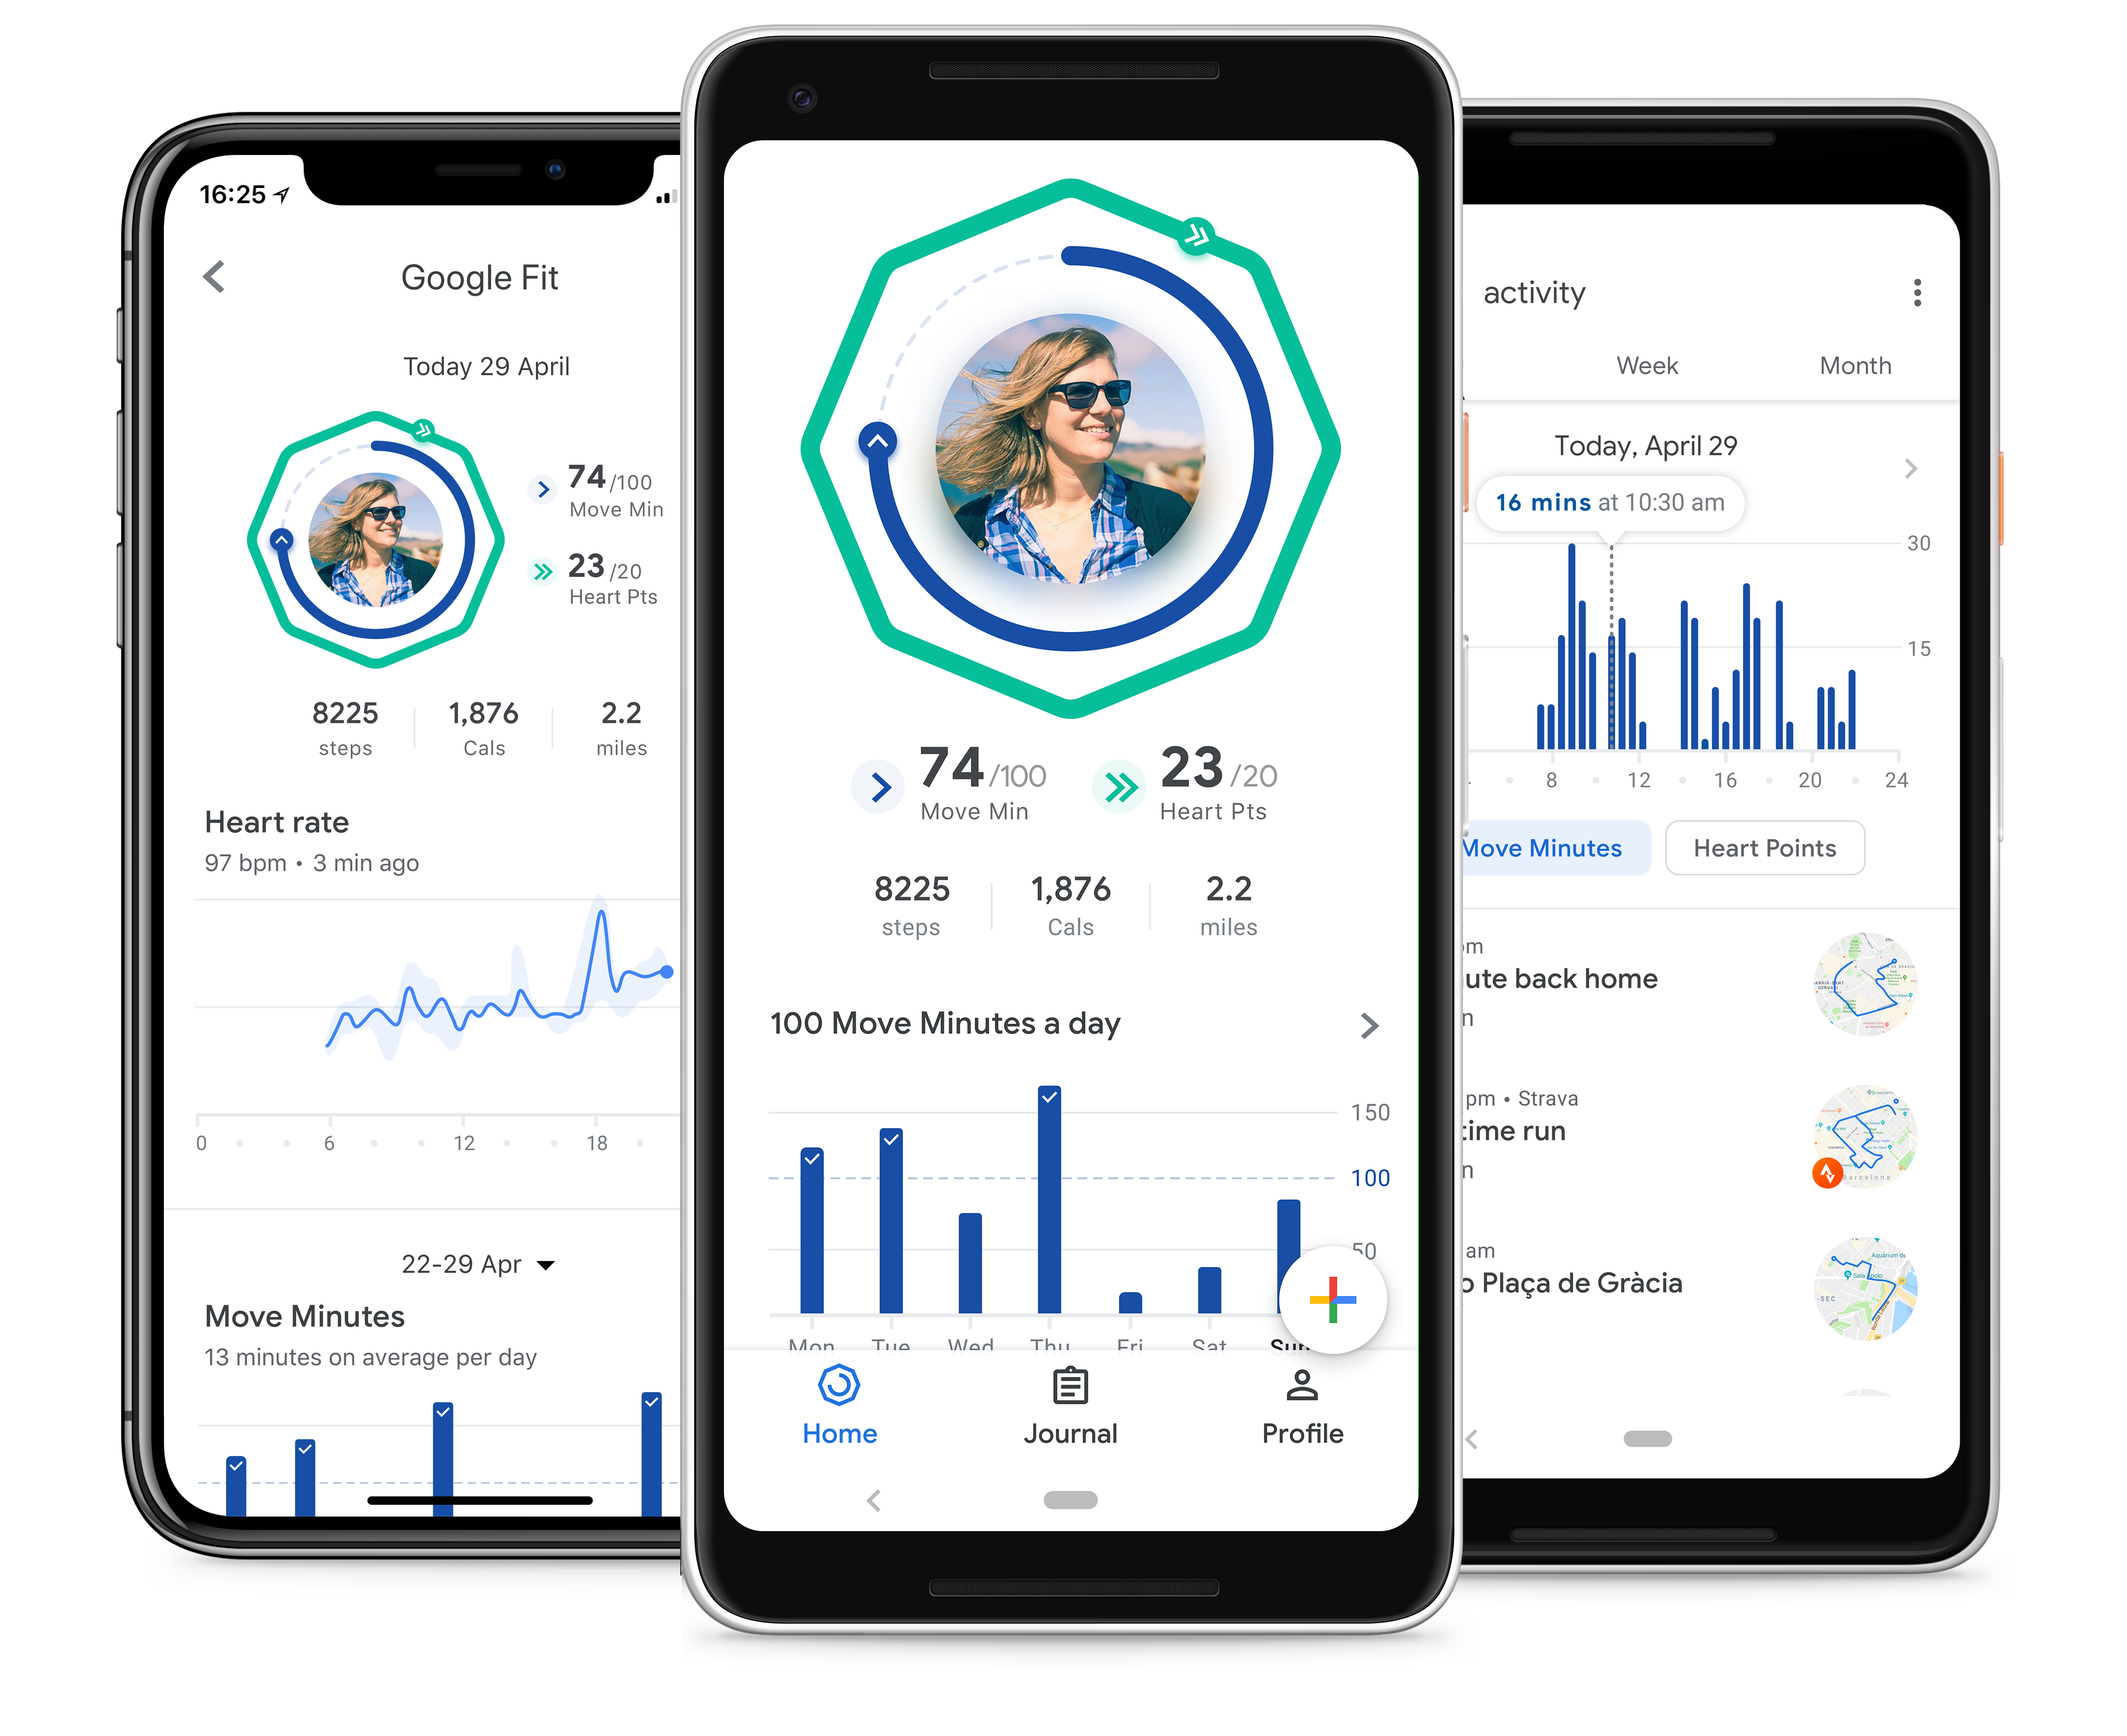 Google Fit gets a redesign, adds Heart Points and coaching   Apple 2